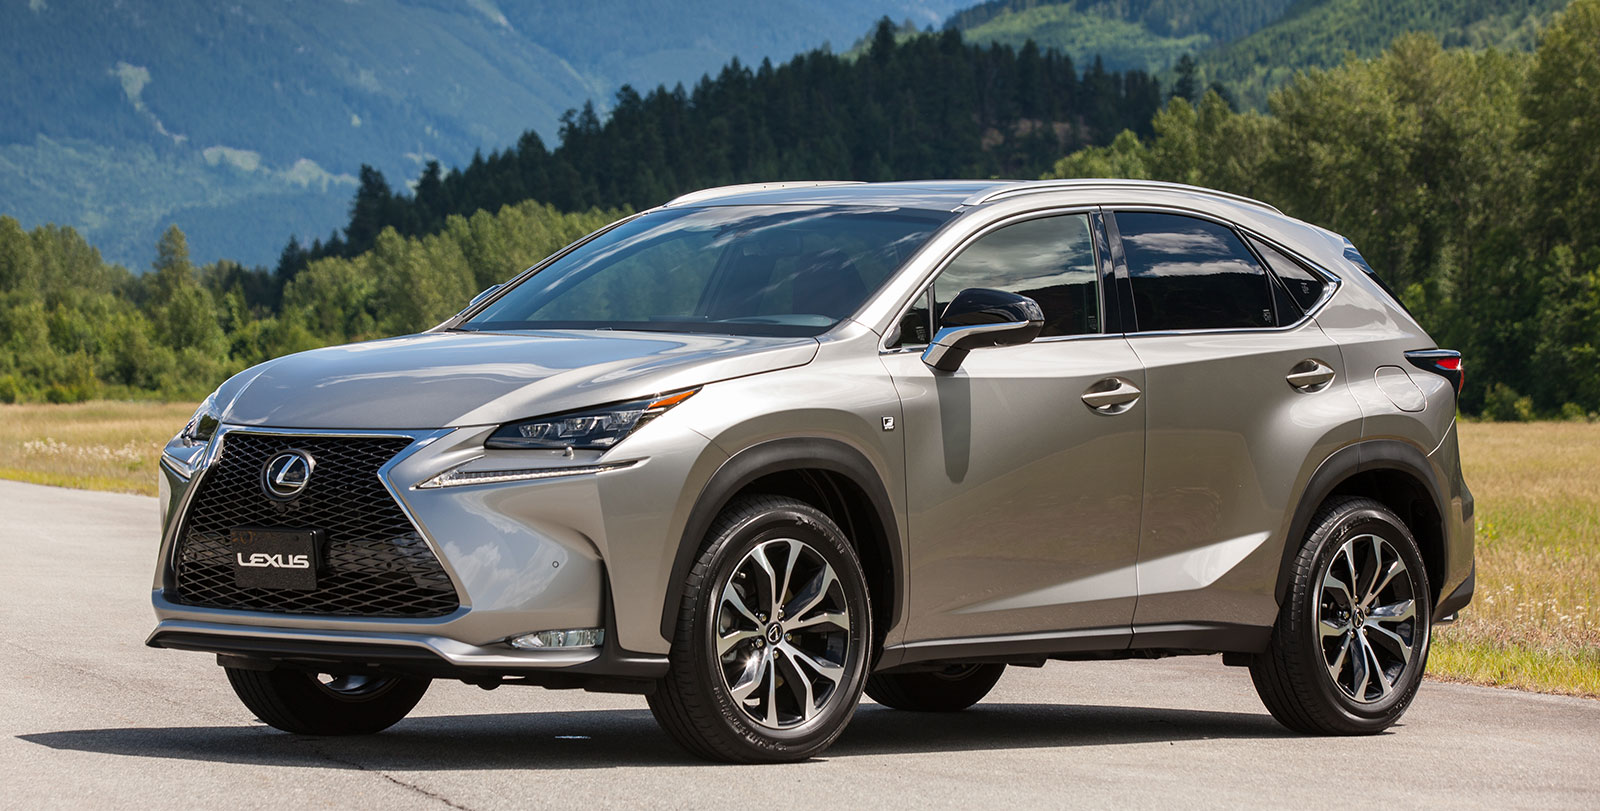 towing capacity for lexus hybrid suv autos post. Black Bedroom Furniture Sets. Home Design Ideas